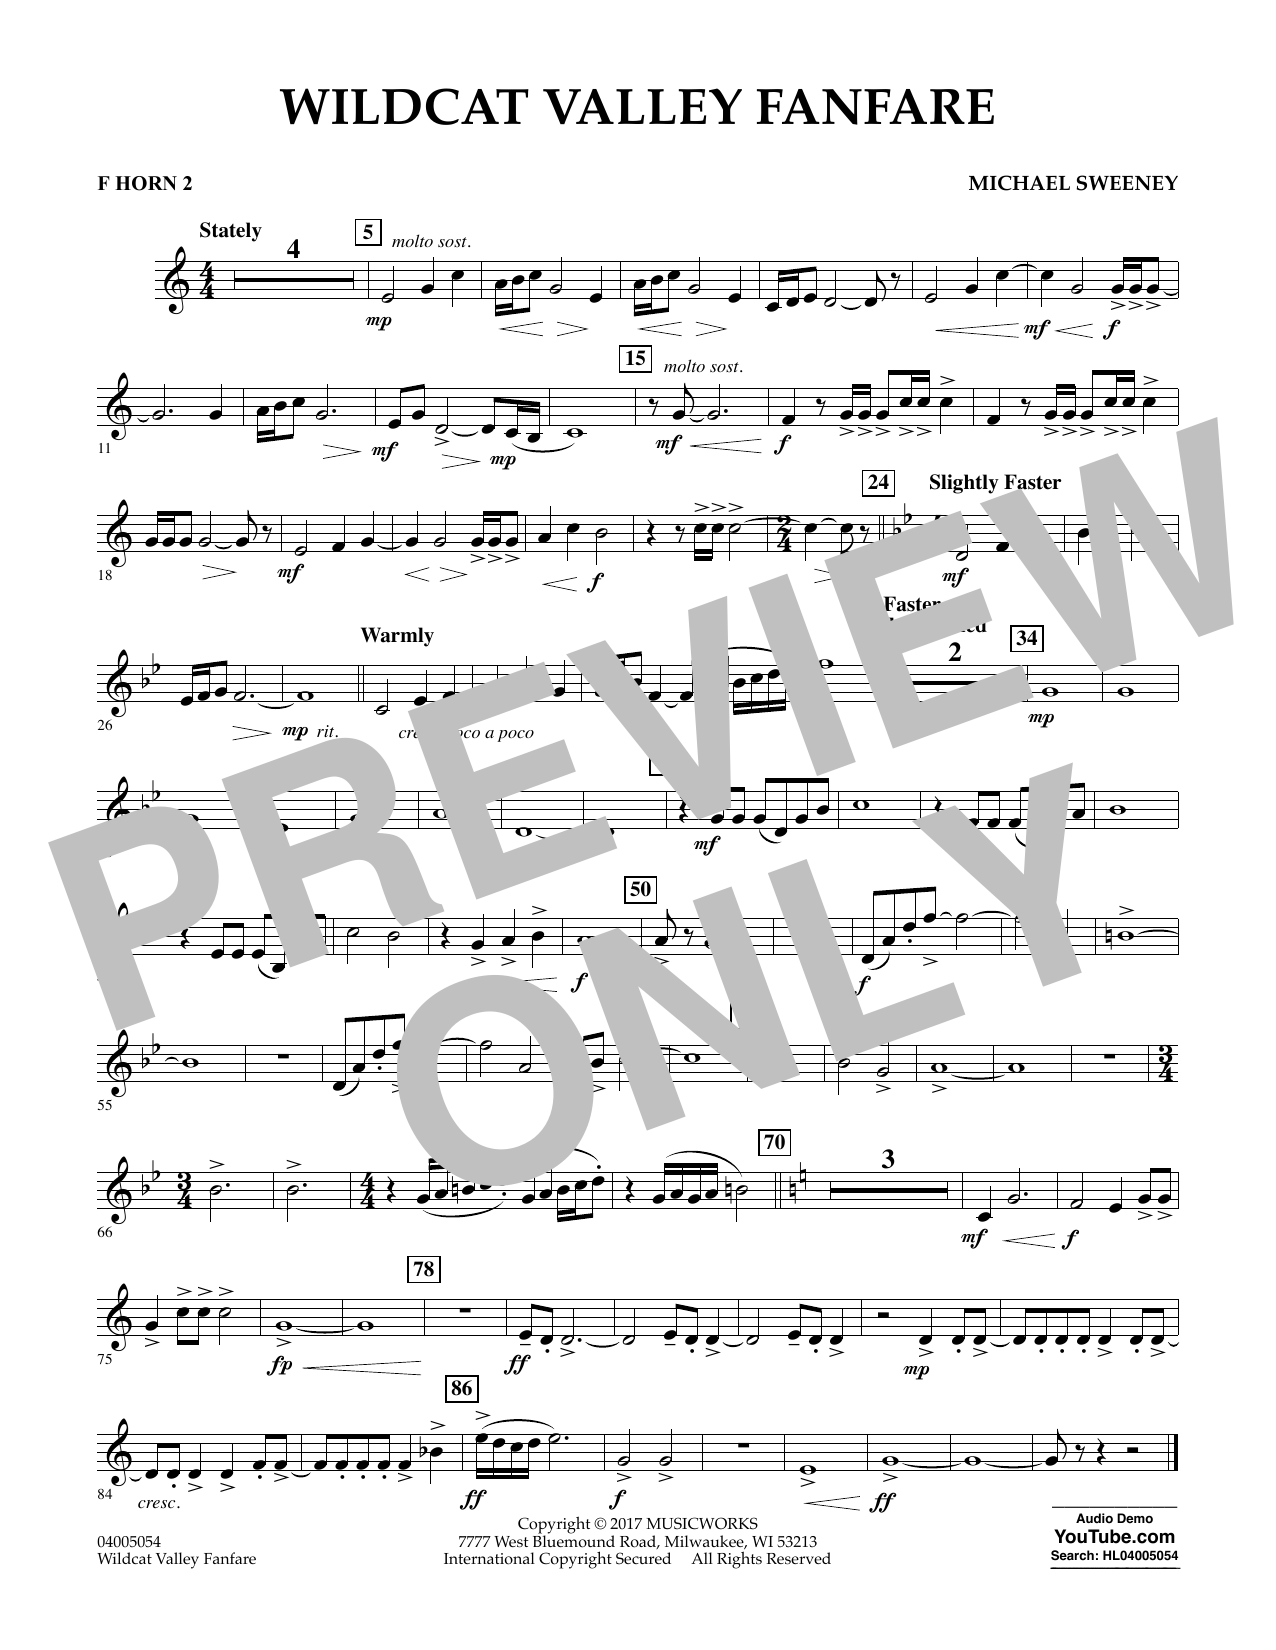 Michael Sweeney Wildcat Valley Fanfare - F Horn 2 sheet music notes and chords. Download Printable PDF.